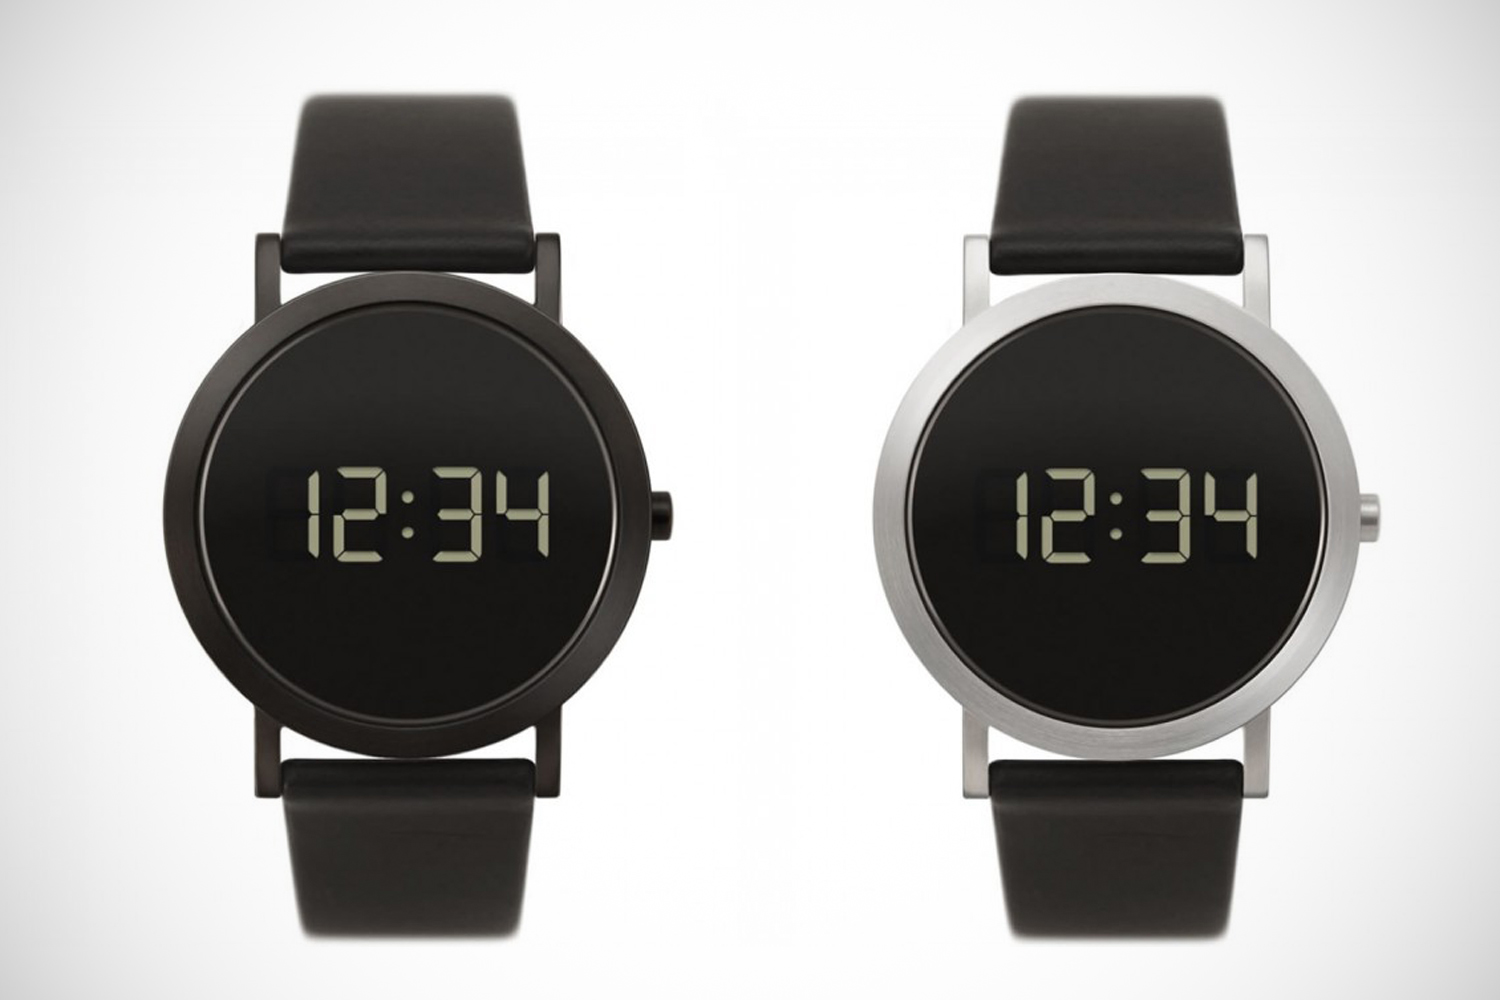 7 Attractively Minimal Digital Watches - HEY GENTS